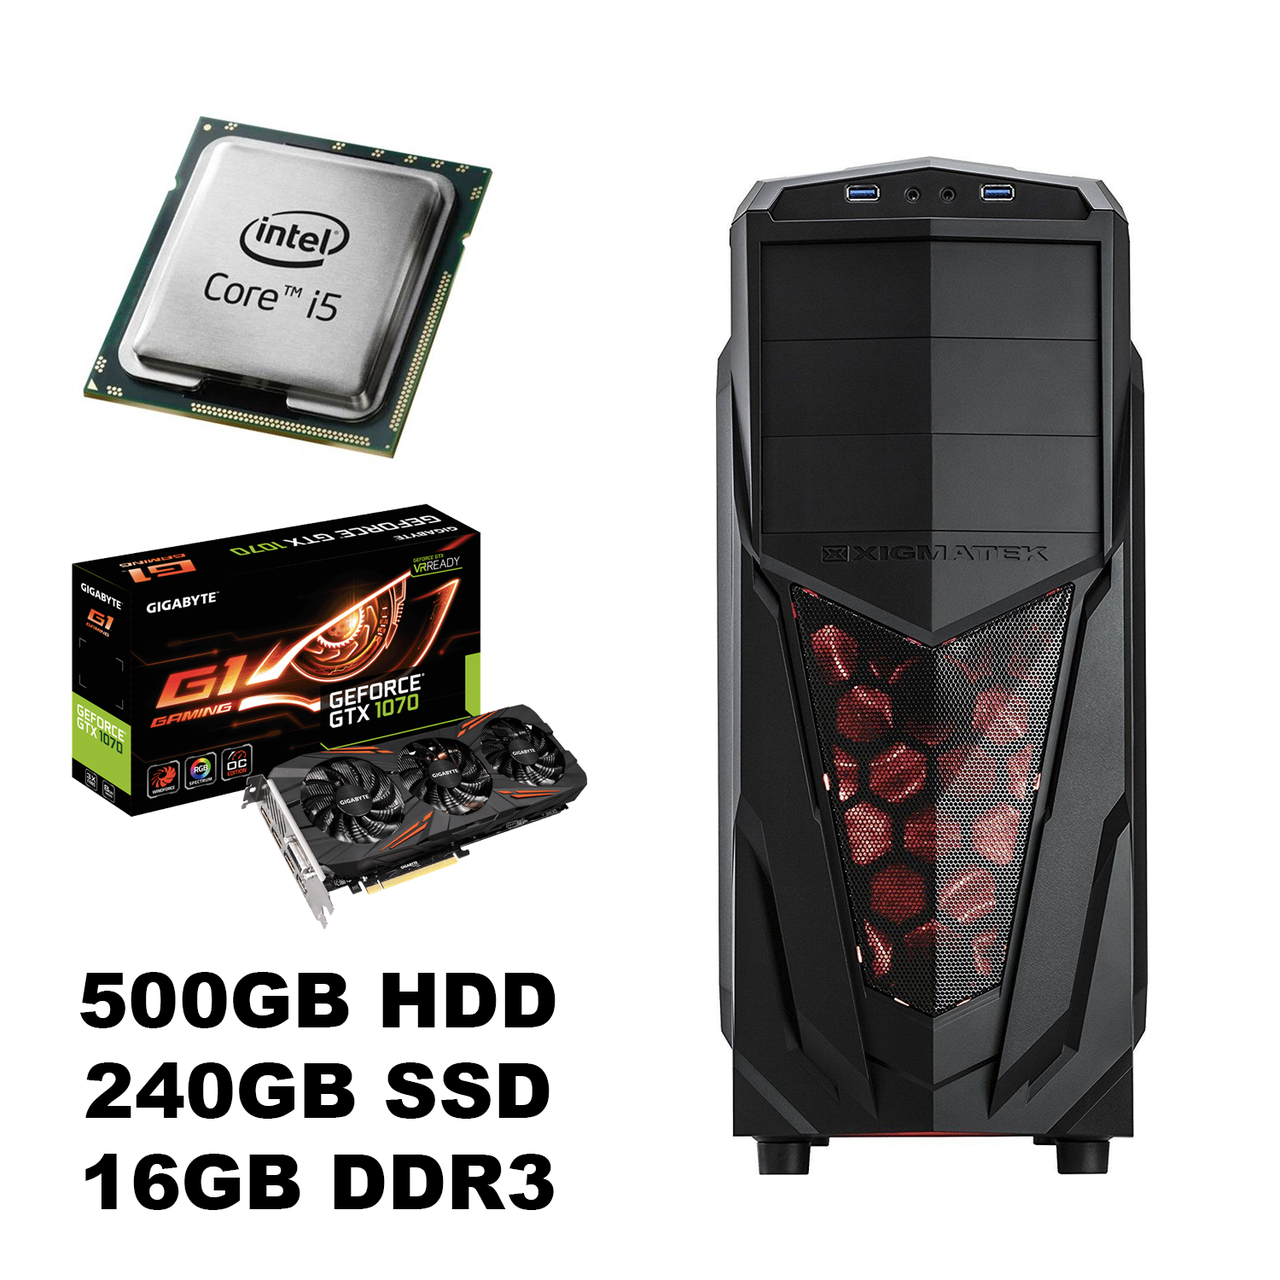 Новый Xigmatek Tower / Intel Core i5-4570 (4 (4) ядра по 3.20-3.60 GHz) / 500GB HDD + Новый 240GB SSD / 16GB DDR3/ USB 3.0, Новый БП 600W Chieftec/